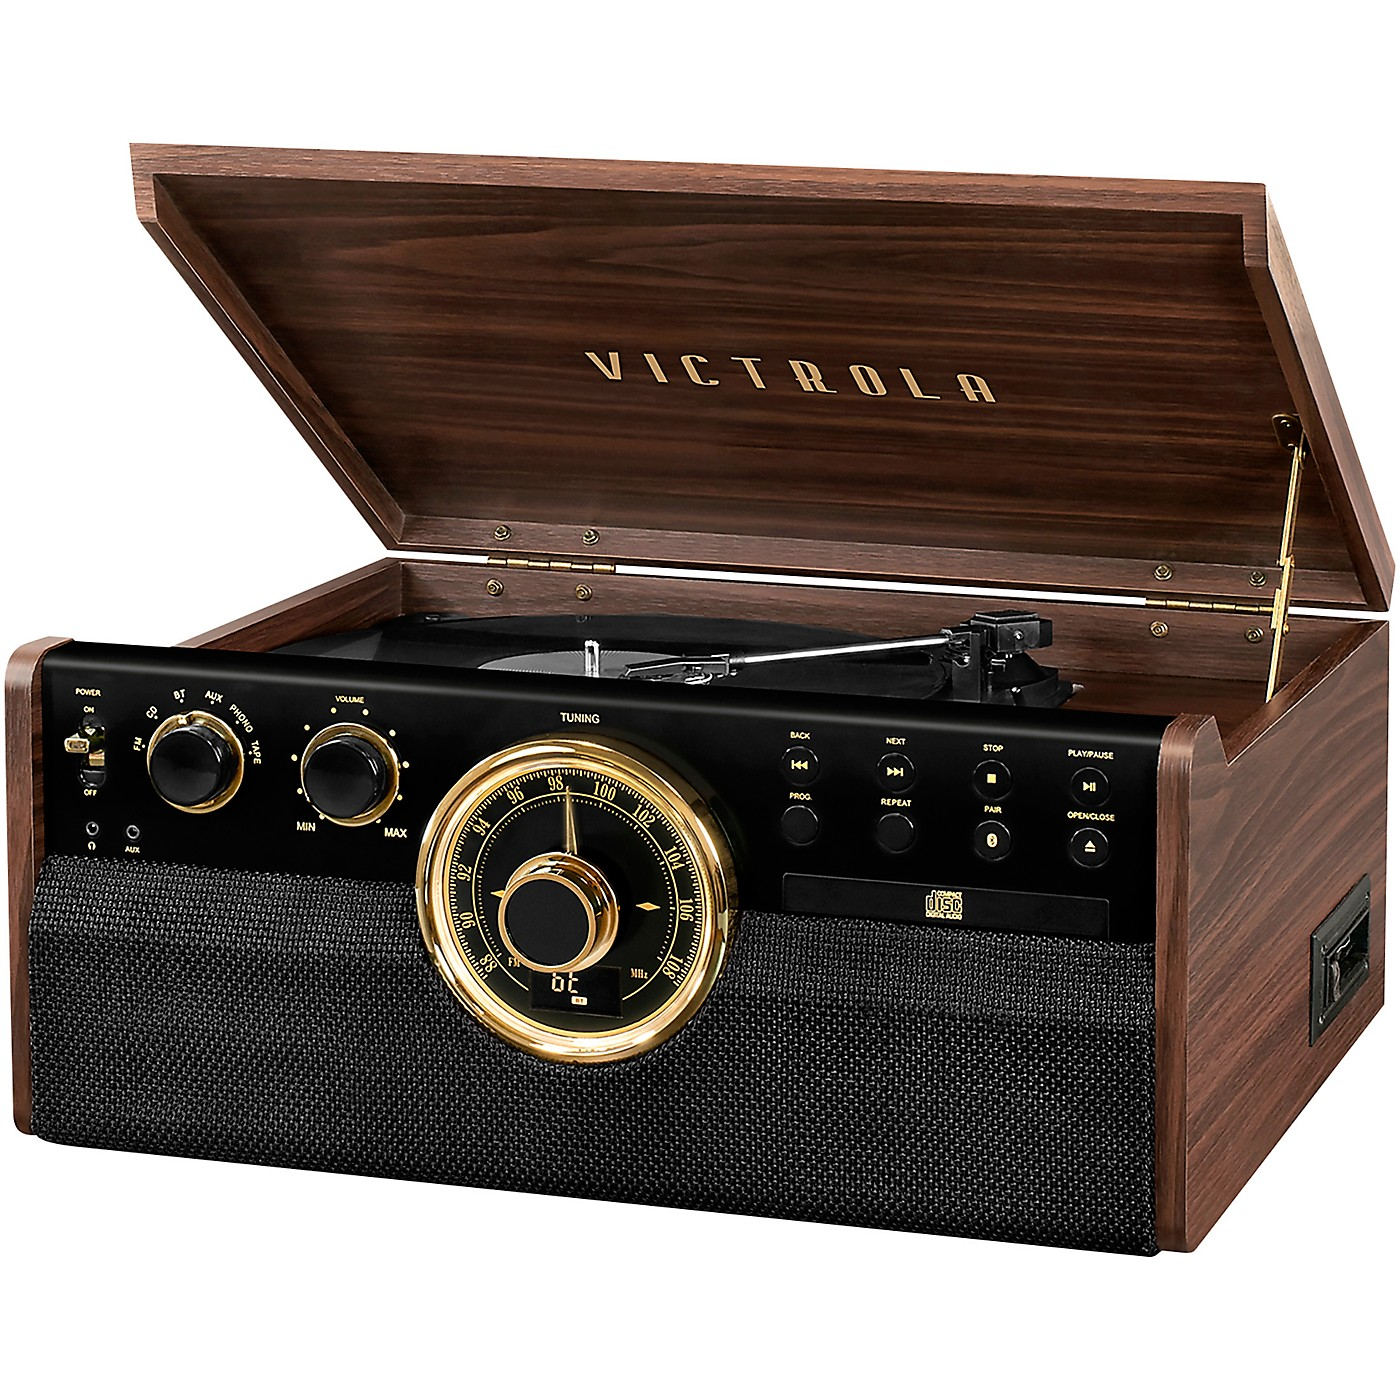 Victrola 6-in-1 Wood Empire Mid Century Modern Bluetooth Record Player with 3-Speed Turntable, CD, Cassette Player and Radio thumbnail